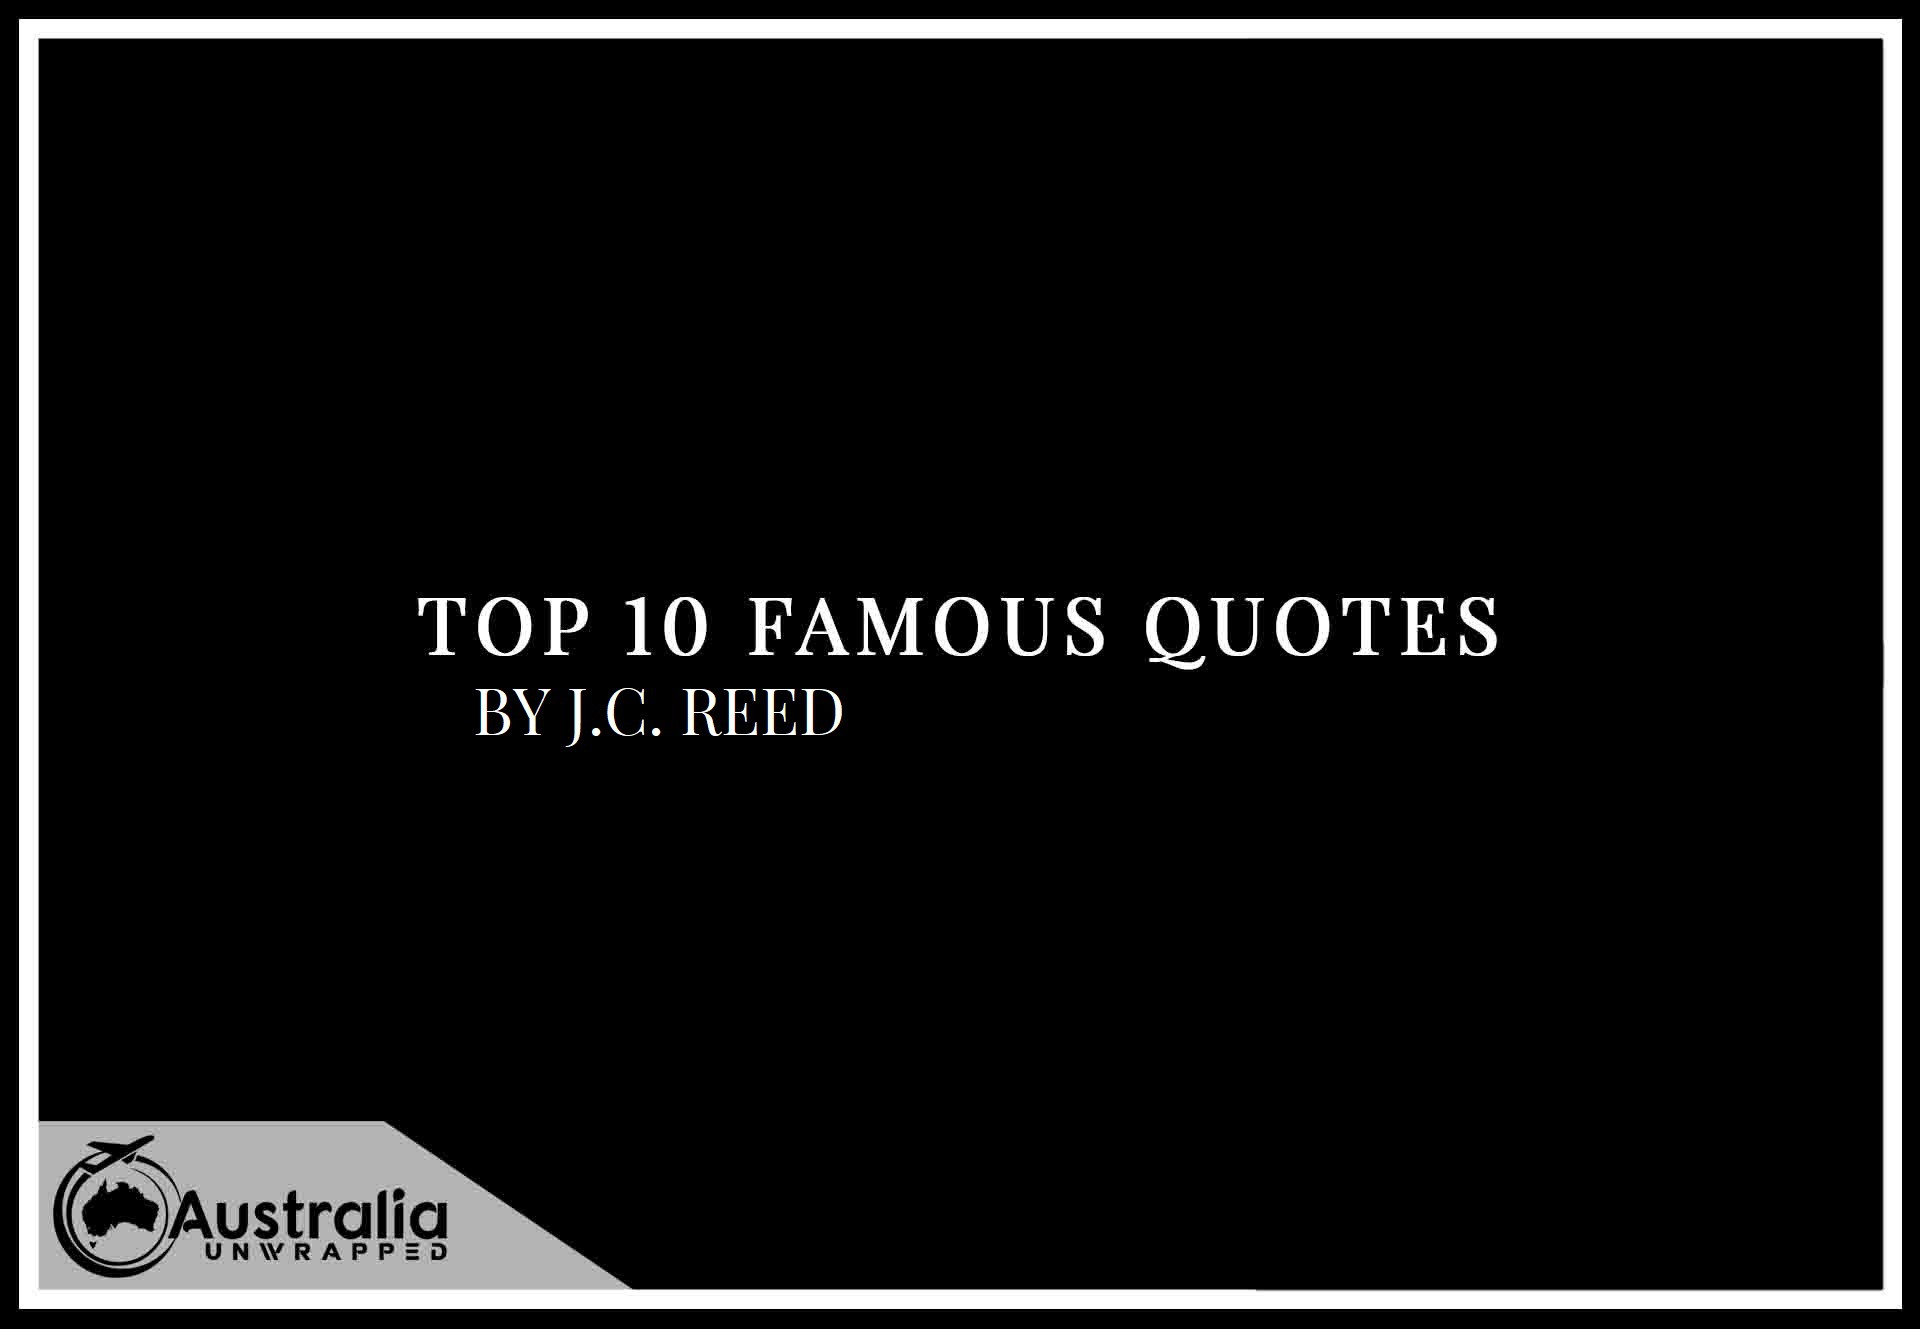 Top 10 Famous Quotes by Author J.C. Reed